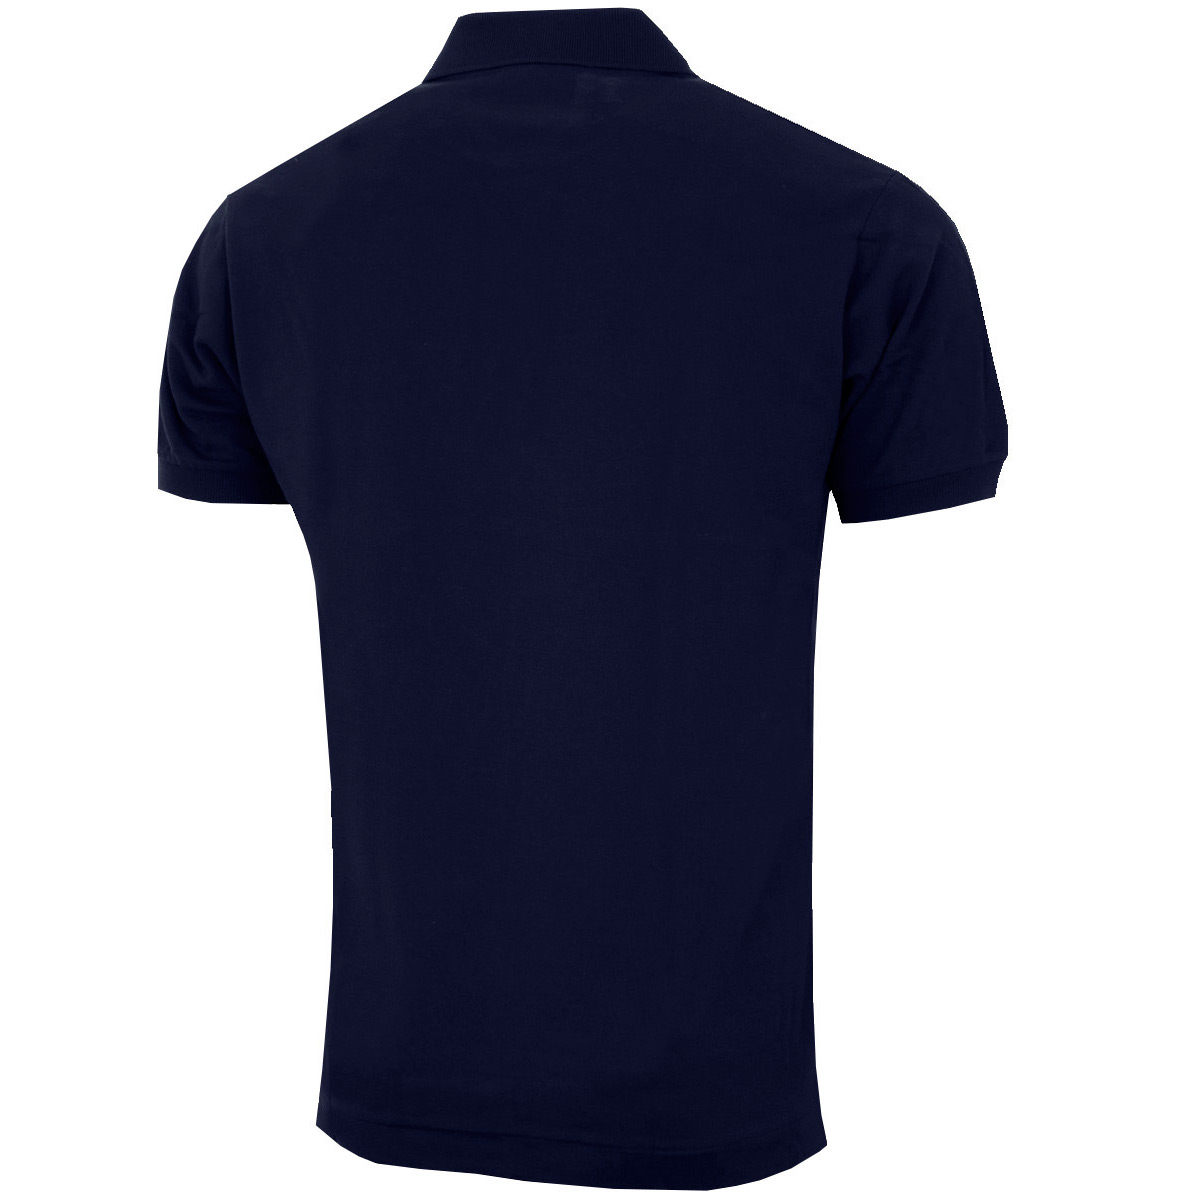 Lacoste-Mens-Classic-Cotton-L1212-Short-Sleeve-Polo-Shirt-31-OFF-RRP thumbnail 37